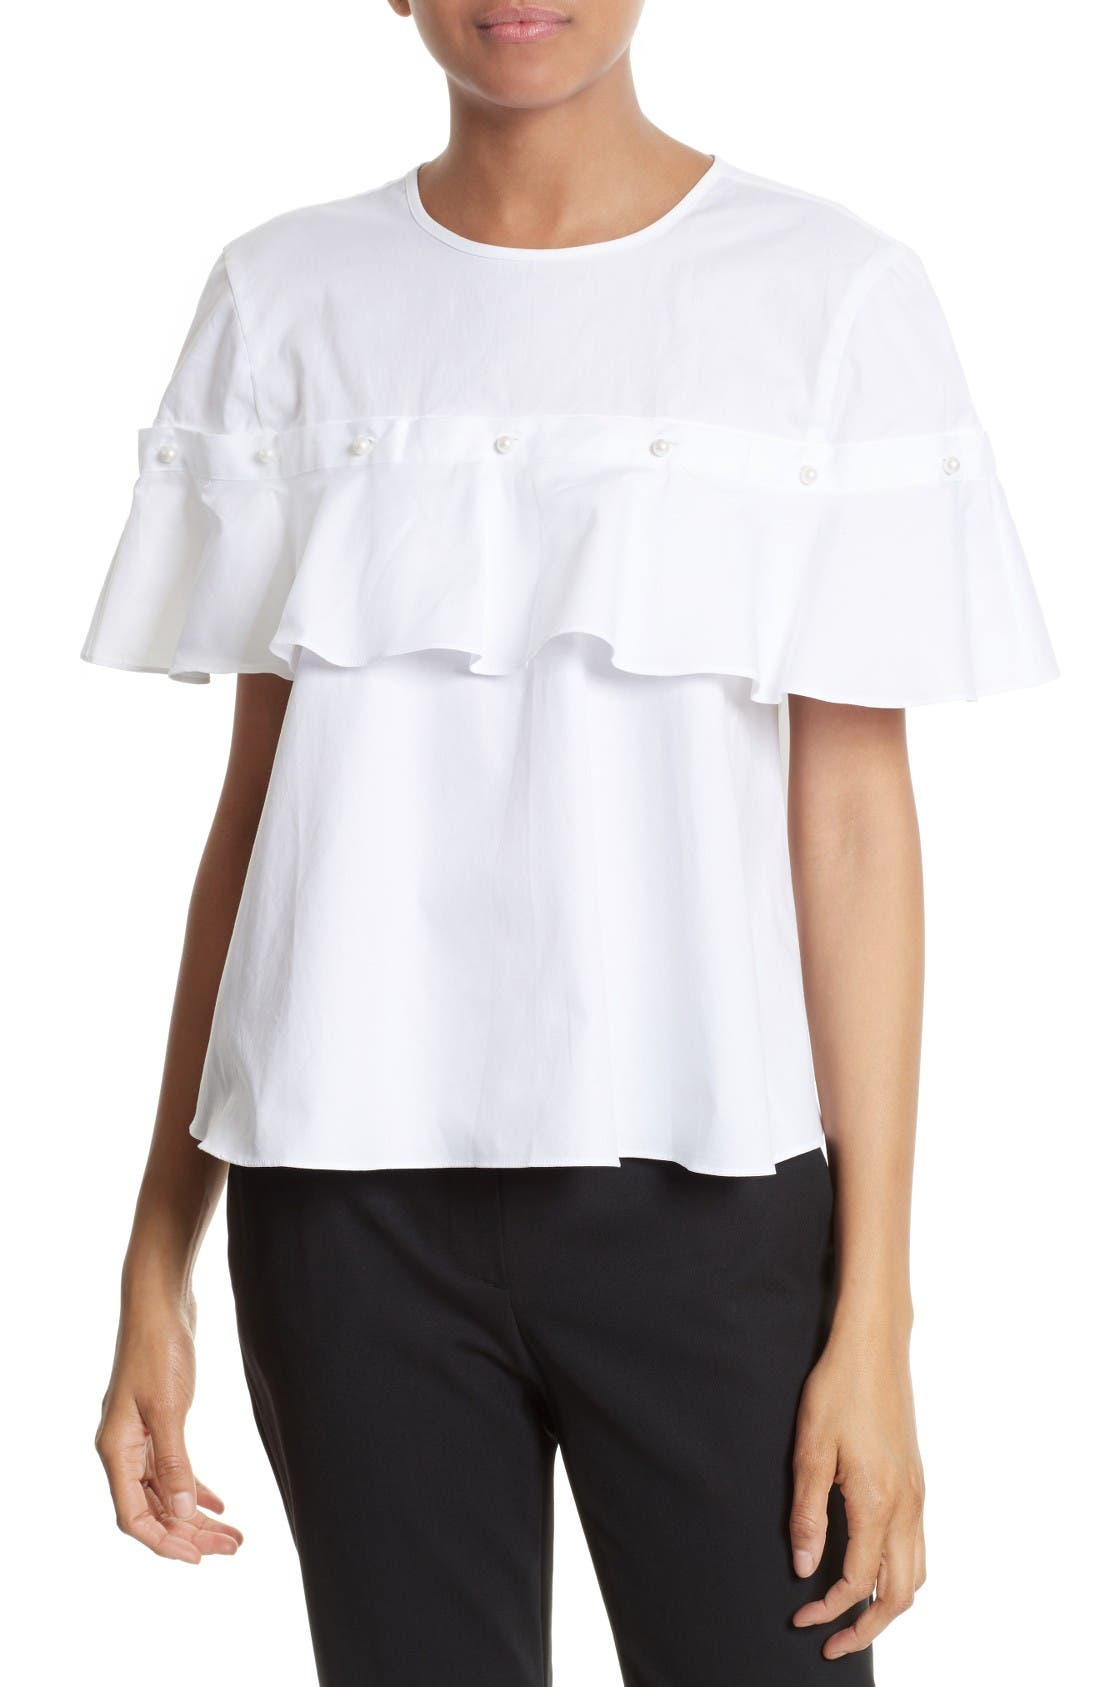 Alternate Image 1 Selected - Jonathan Simkhai Cotton Ruffle Top